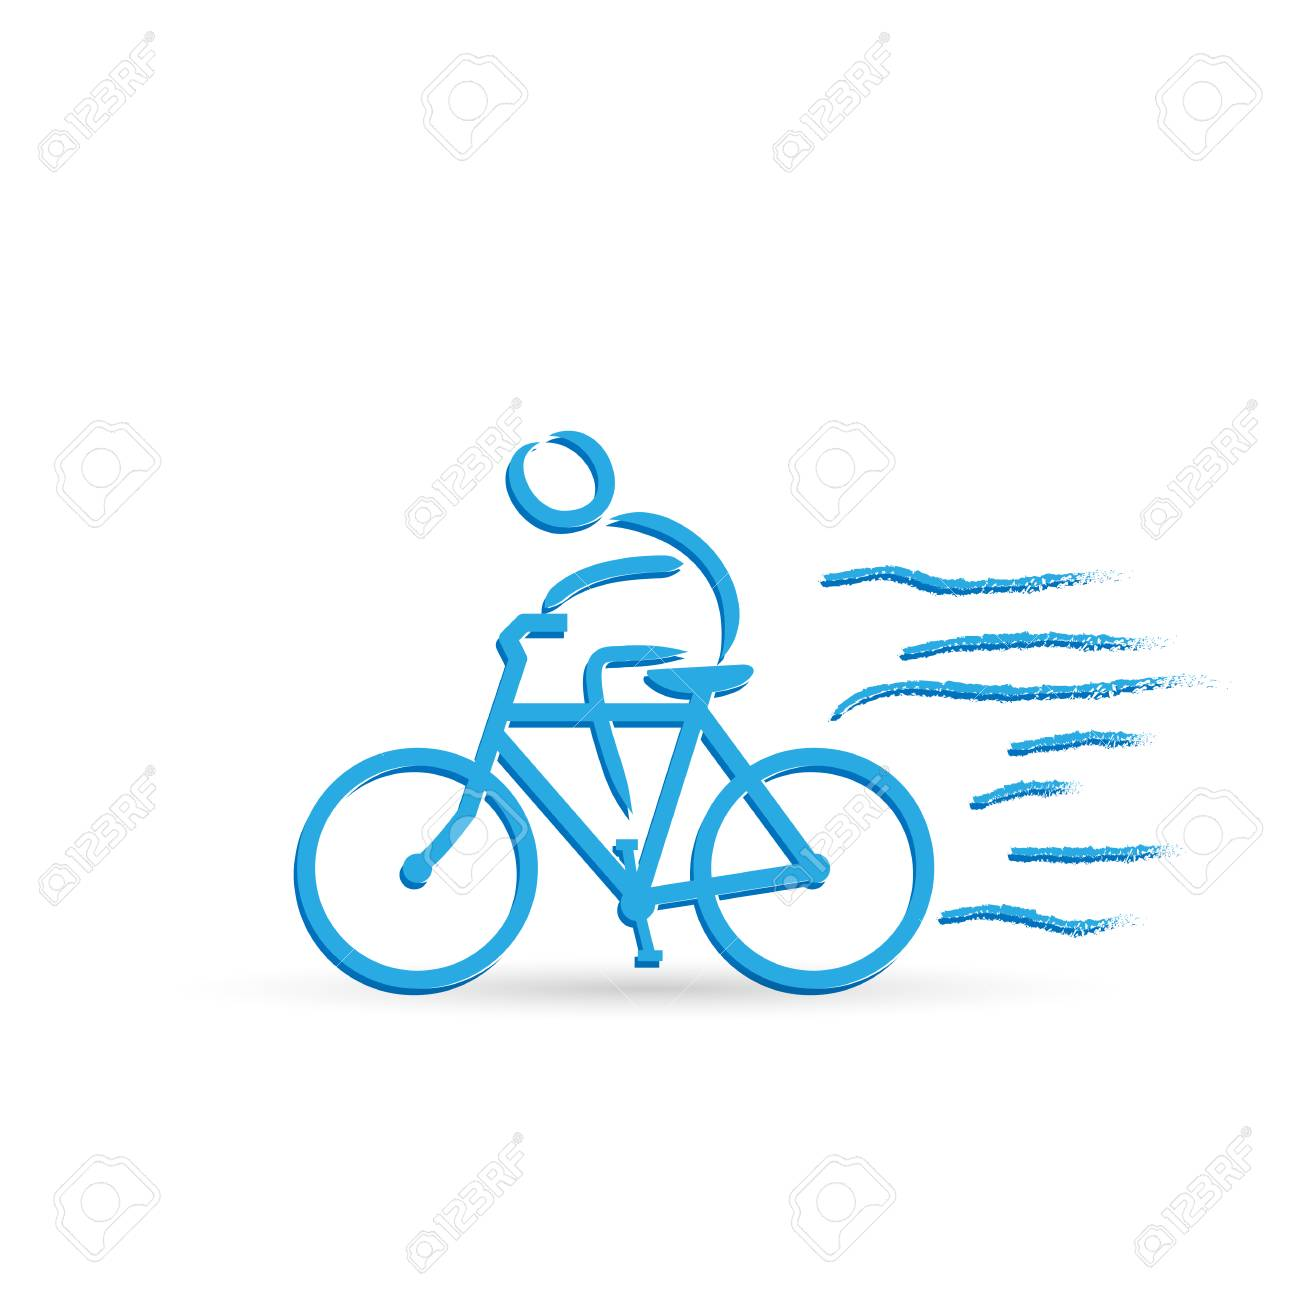 Illustration of a bicycle and rider design isolated on a white background. - 97016095